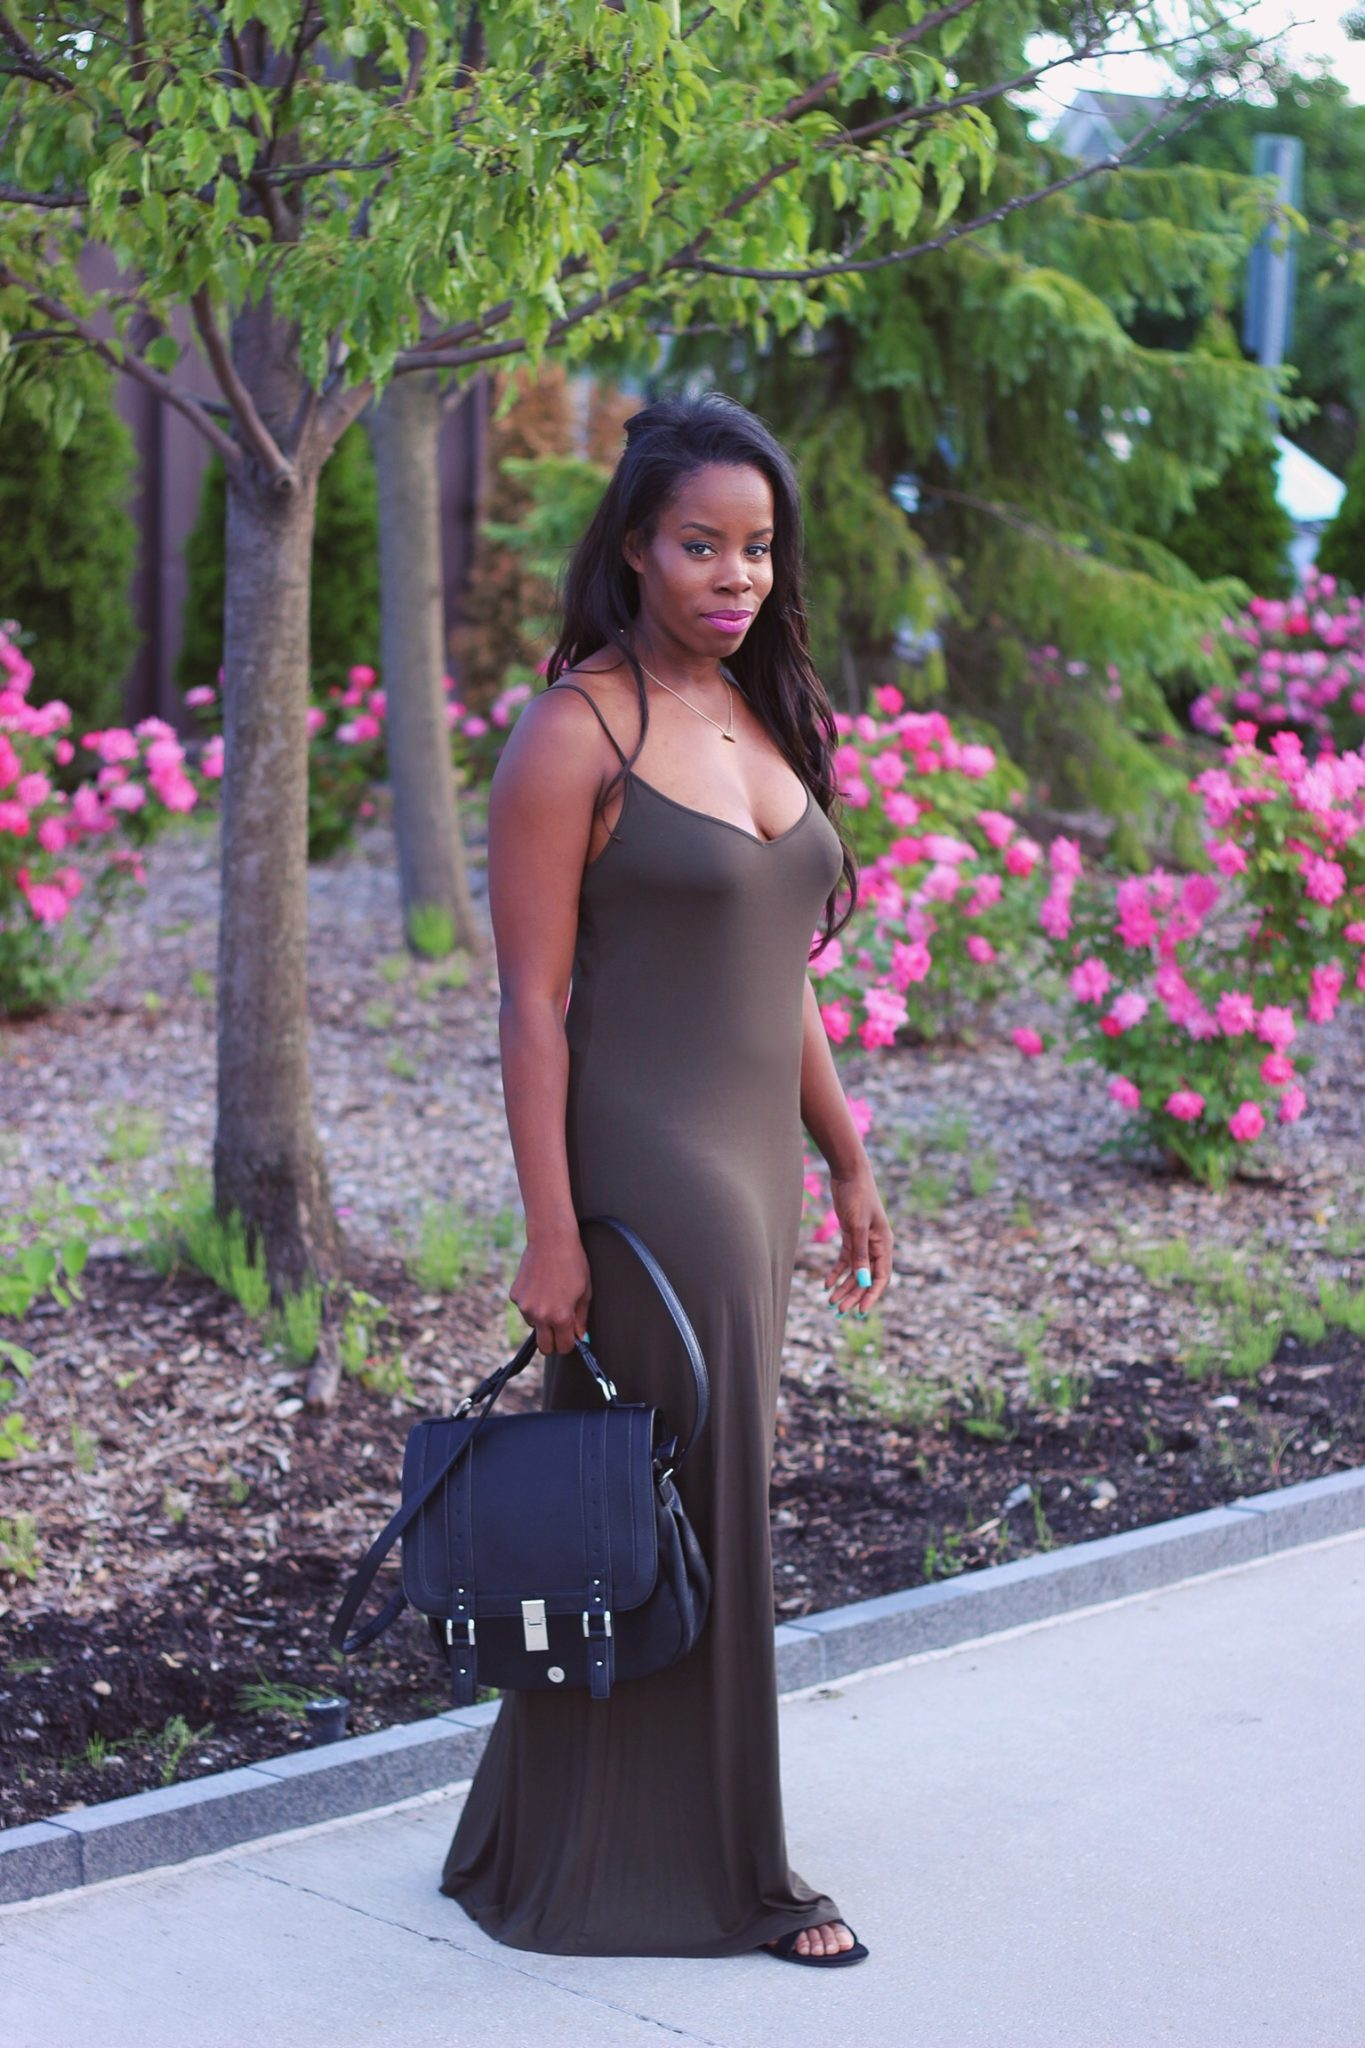 img_0462-1 www.Birthofafashionblogger.com Collab: (How To) Summer Dresses Aldo Shoes F21 Fashion Fun H&M how to Justfab OOTD shopping Spring 2016 Style How To's: Style Inspiration Styling Target Uncategorized Urban Og